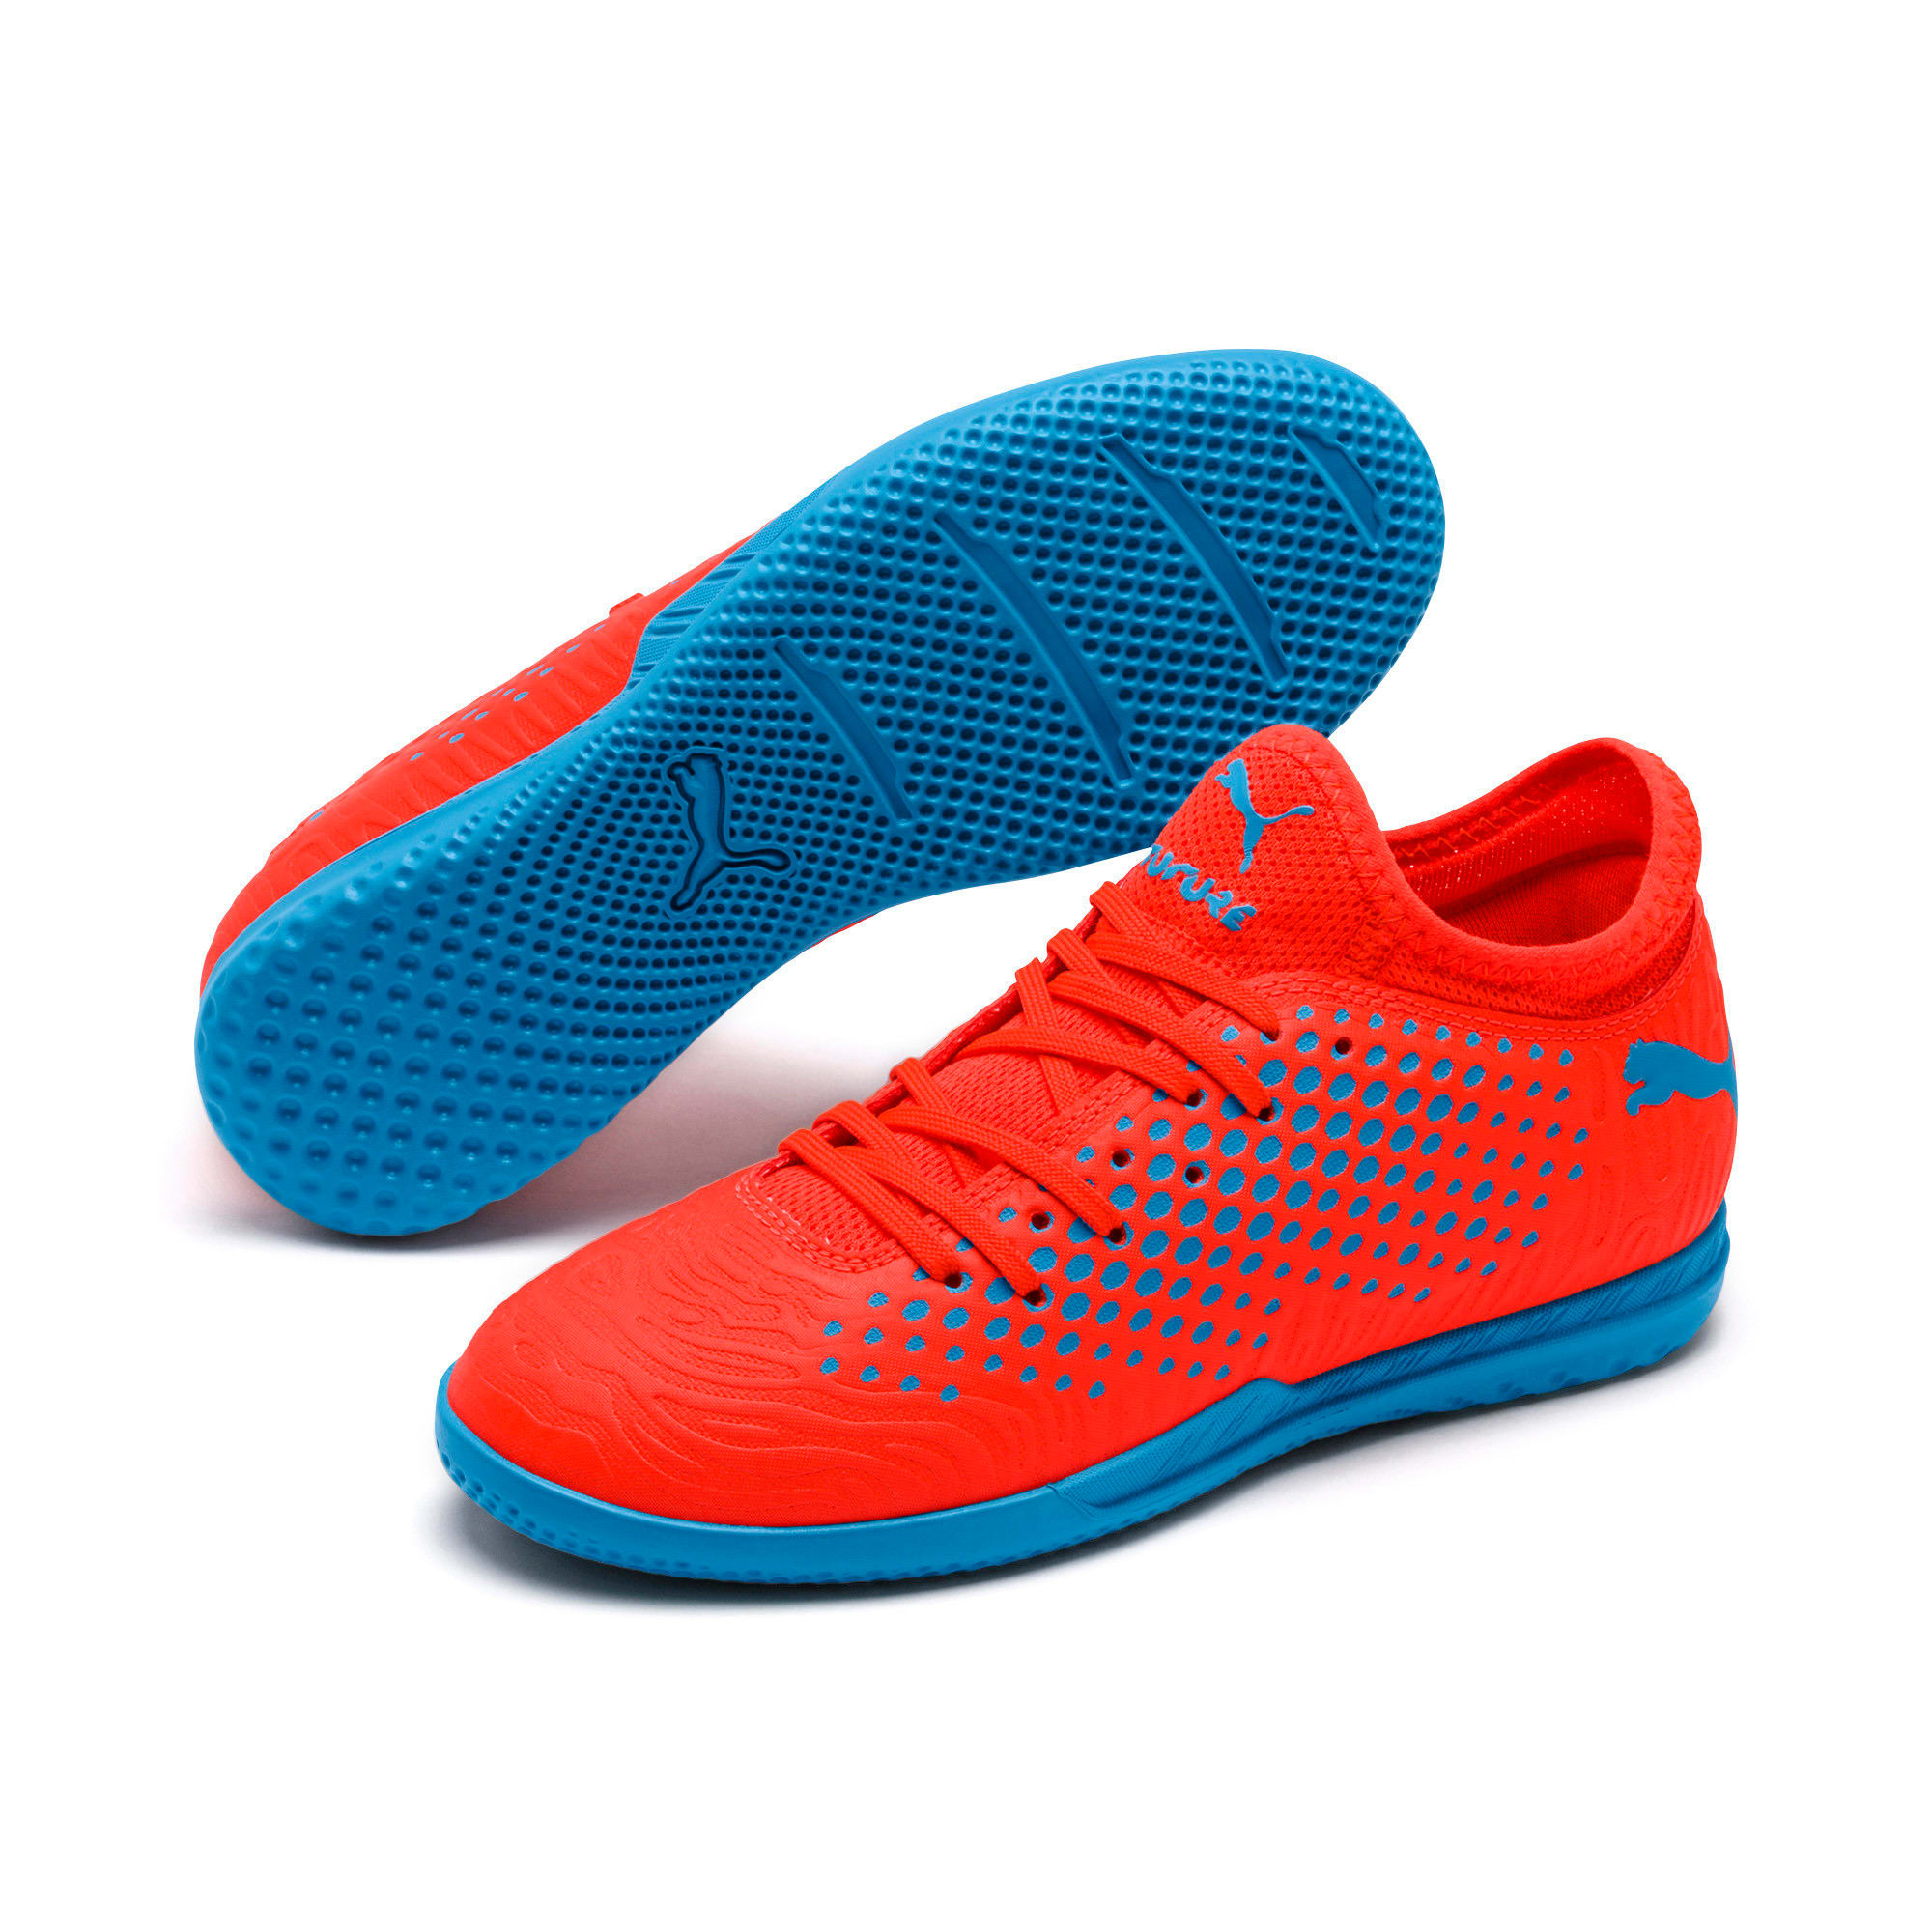 Thumbnail 2 of FUTURE 19.4 IT Soccer Shoes JR, Red Blast-Bleu Azur, medium